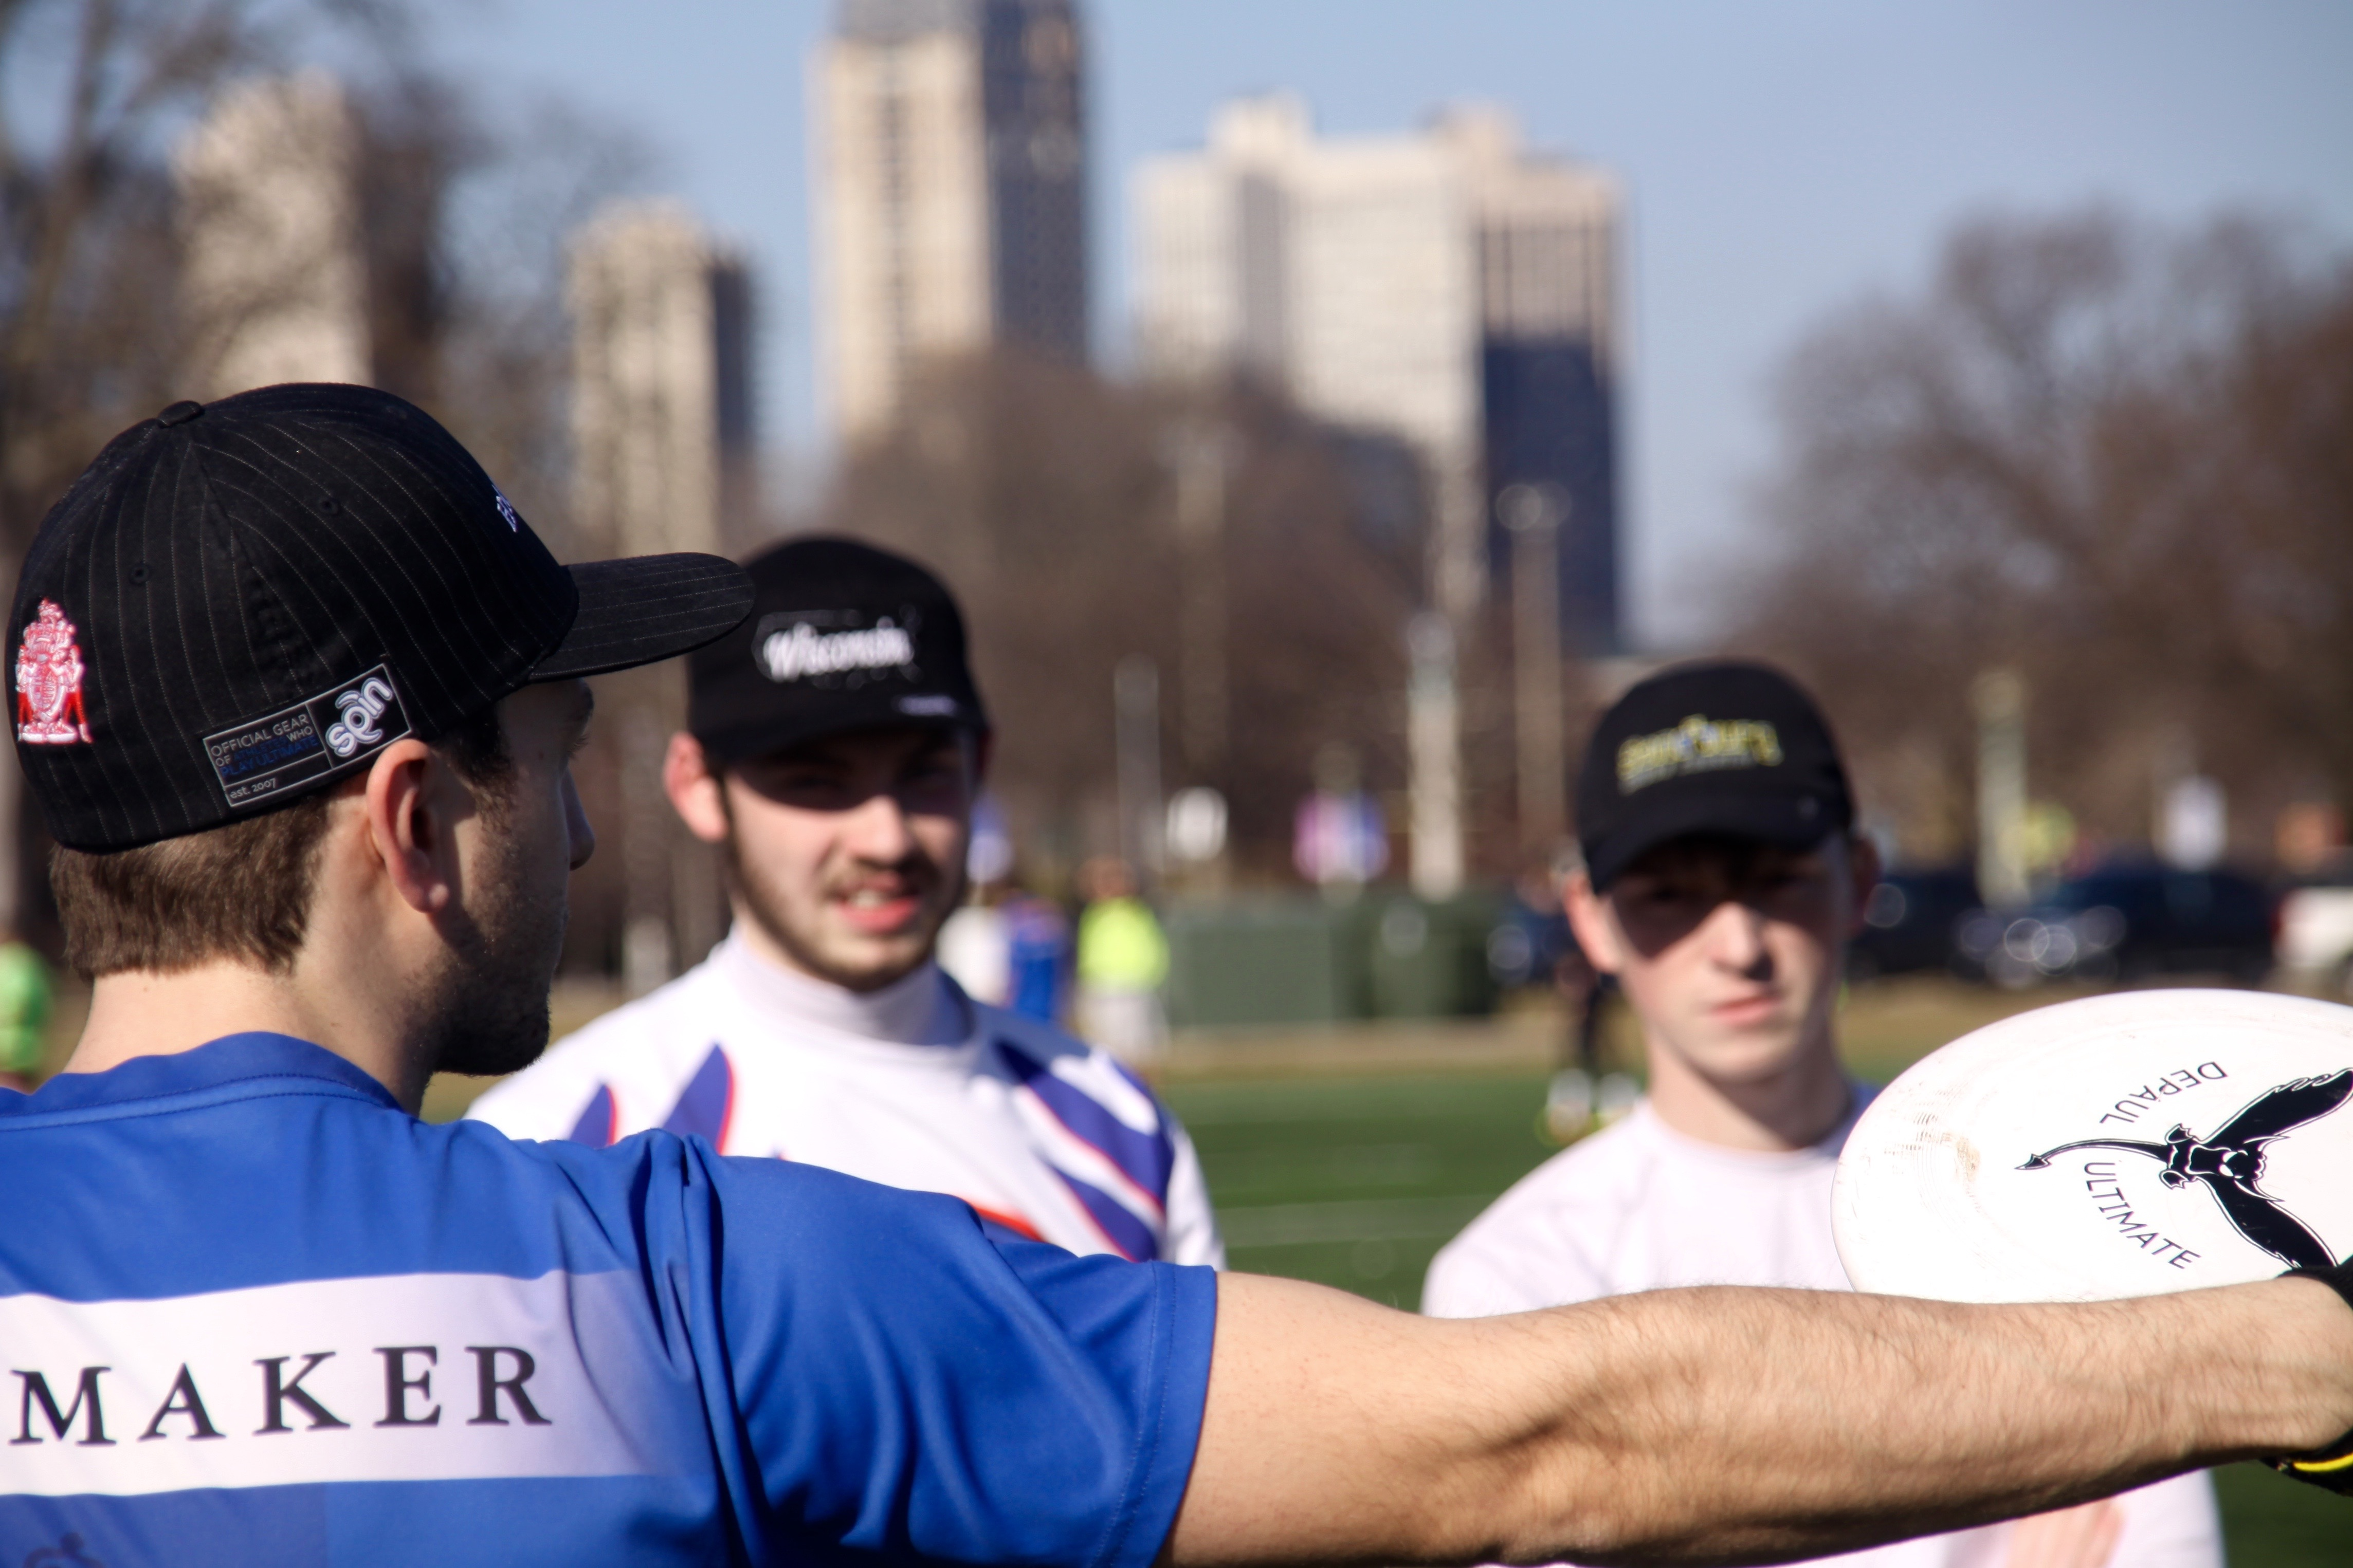 DePaul Ultimate Club coach Jake Ward provides instructions for the next team drill during a practice on Jan. 21, 2017. (Photo/Ben Rains)